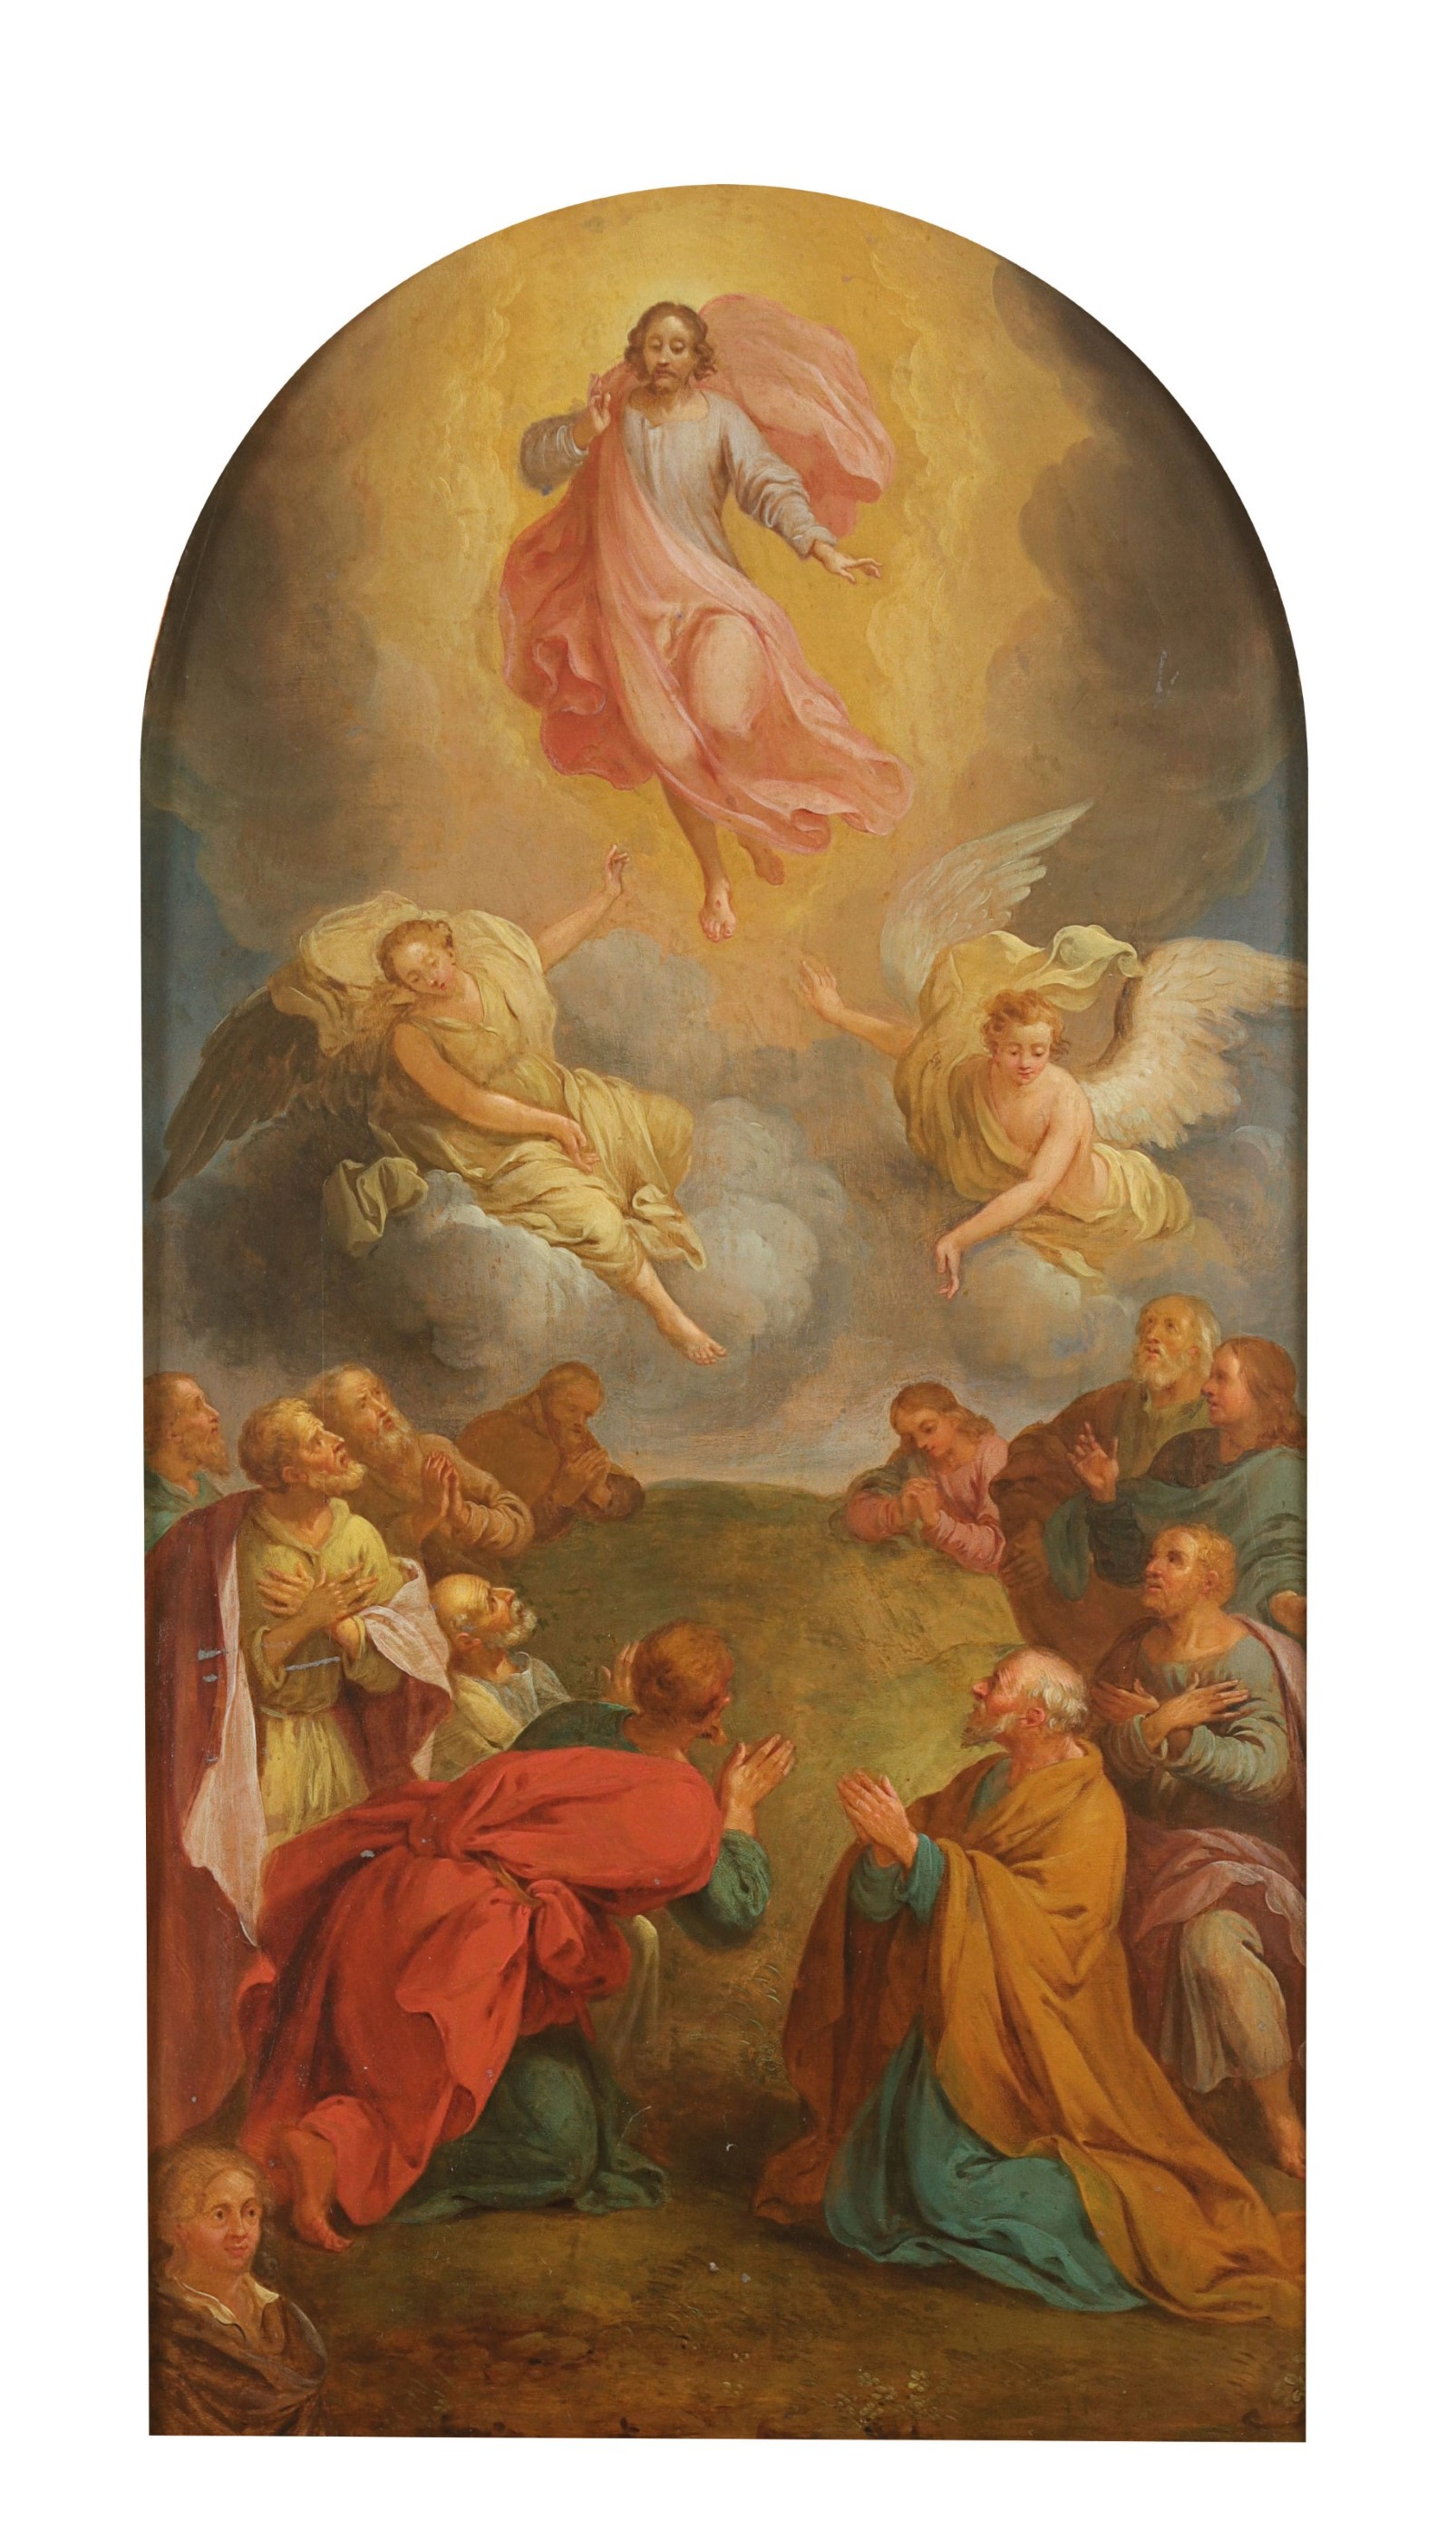 Eustache Le Sueur, 'Ascension of Christ', oil on metal. Photo: Hessink's